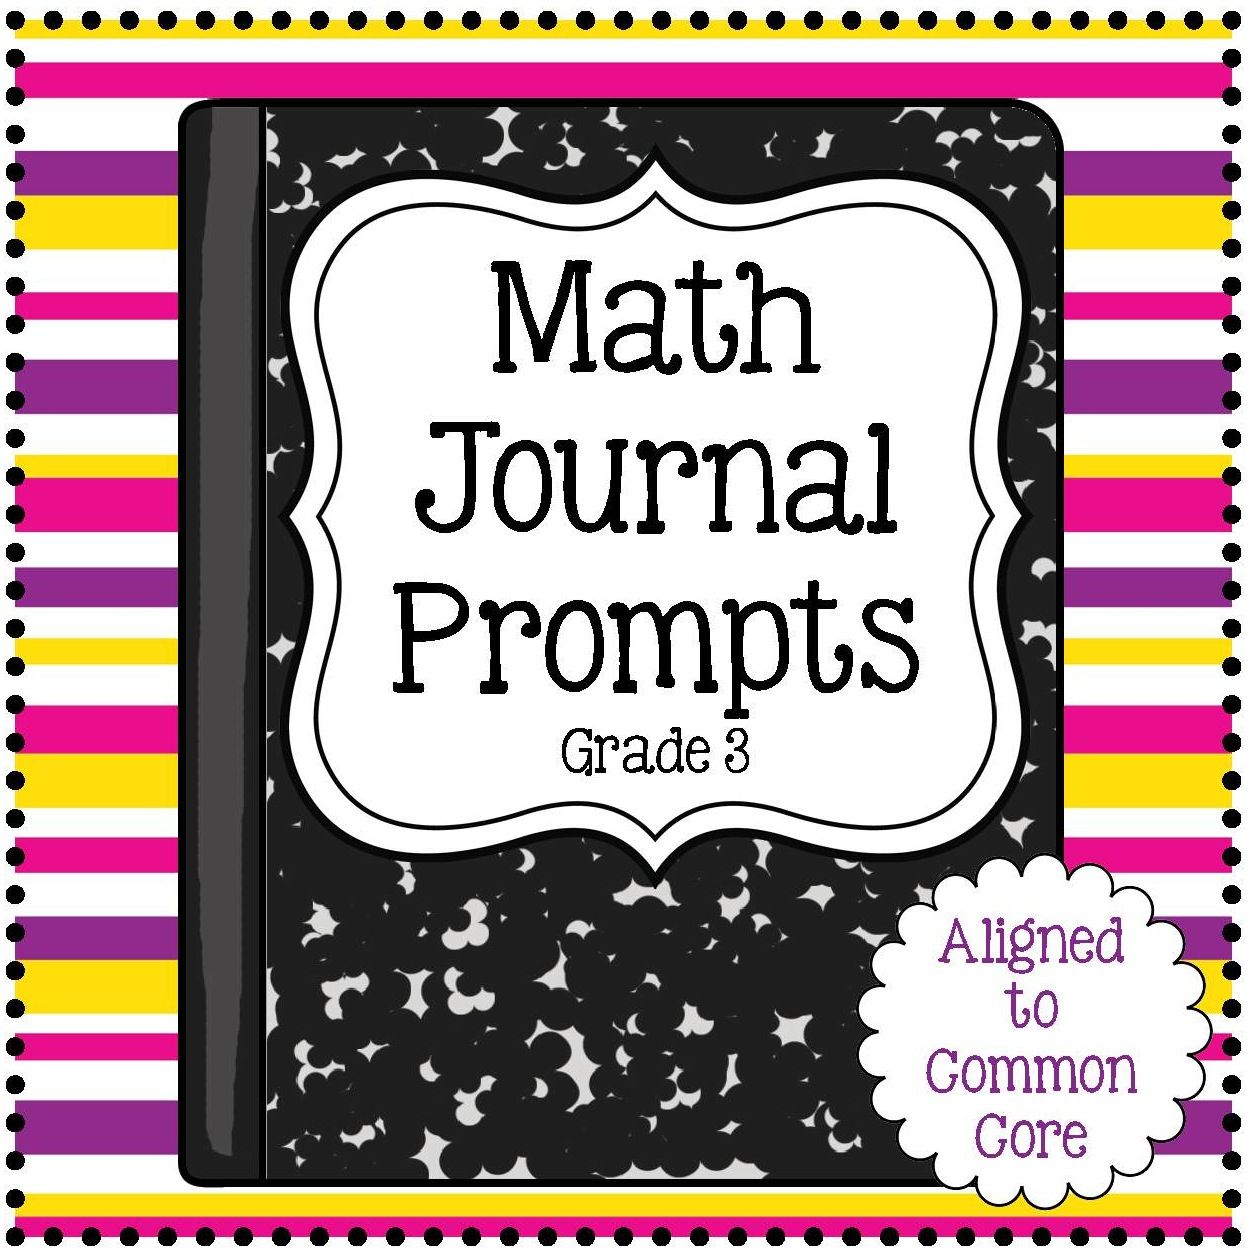 Math Journal Prompts- Over 100 Pages of Third Grade Math Journal Prompts  that are aligned to the Common Core